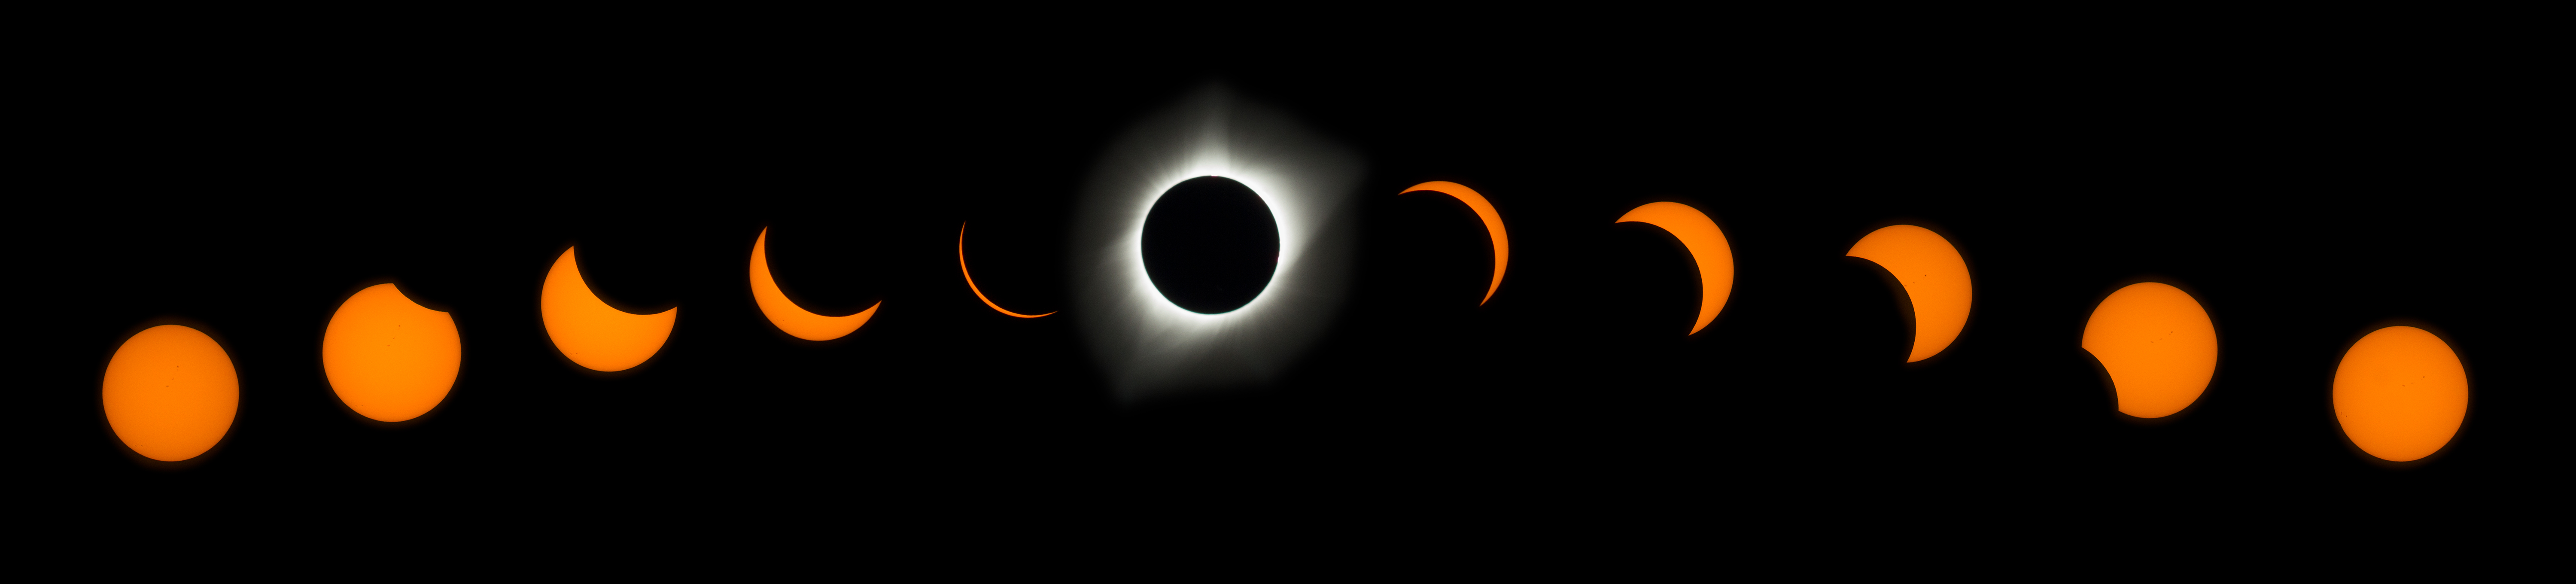 eclipse-phases-df0338e28155a0814ee57ec2a94a74df93349ed5